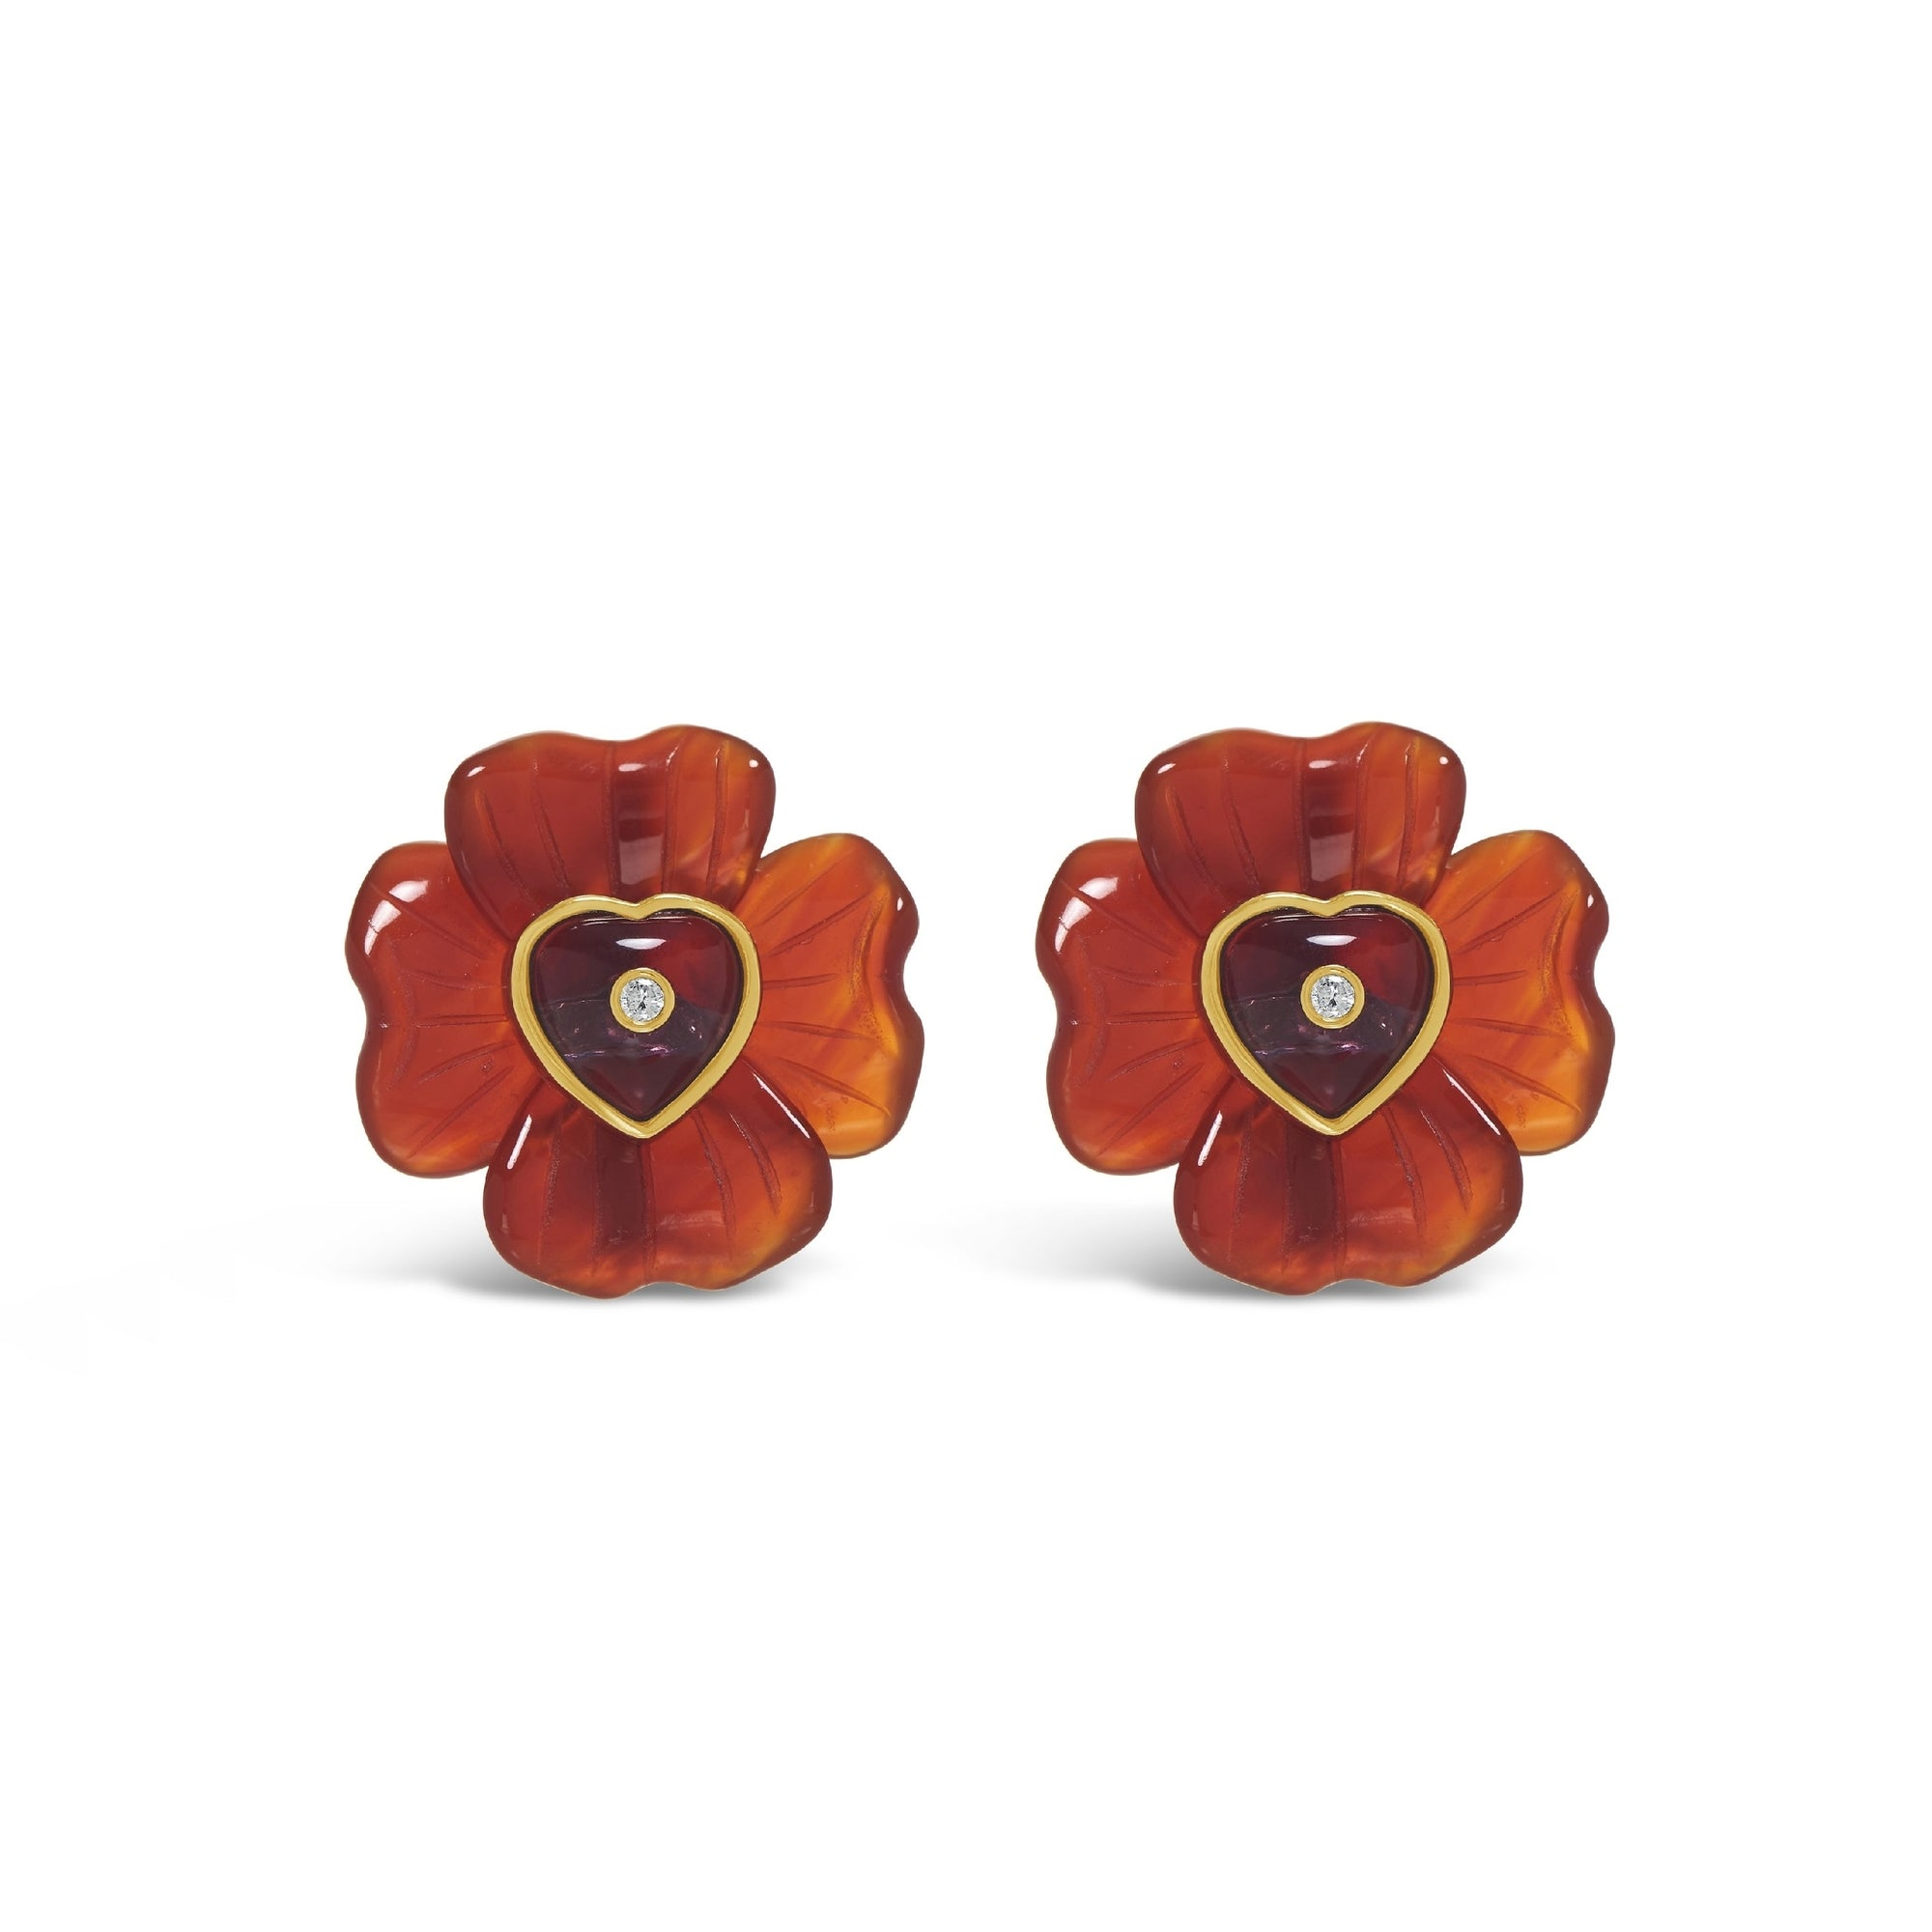 Medium Clover & Puff Heart Stone Inset Studs